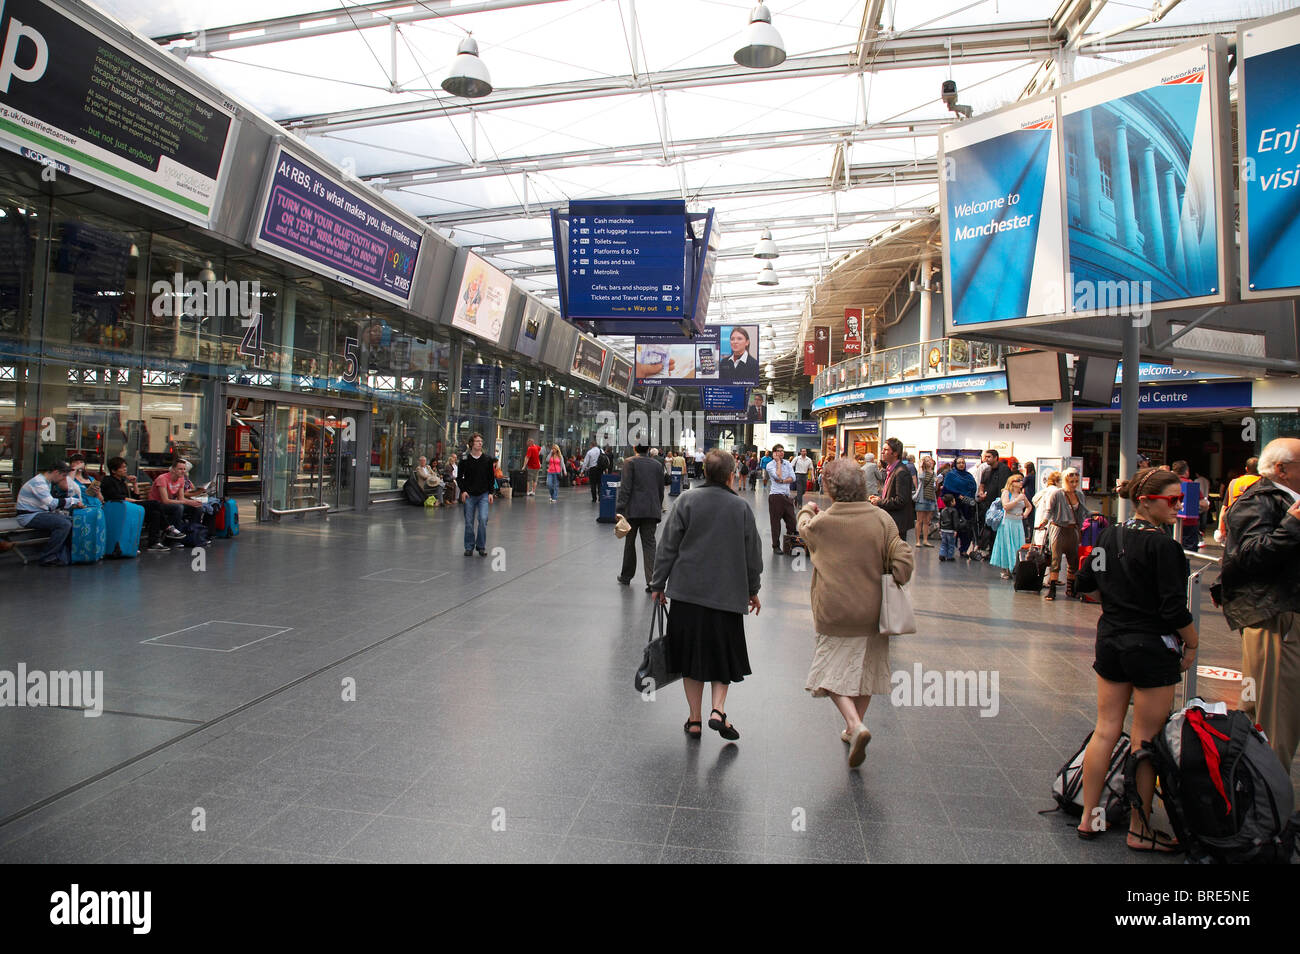 Inside Piccadilly Railway station in Manchester UK Stock Photo